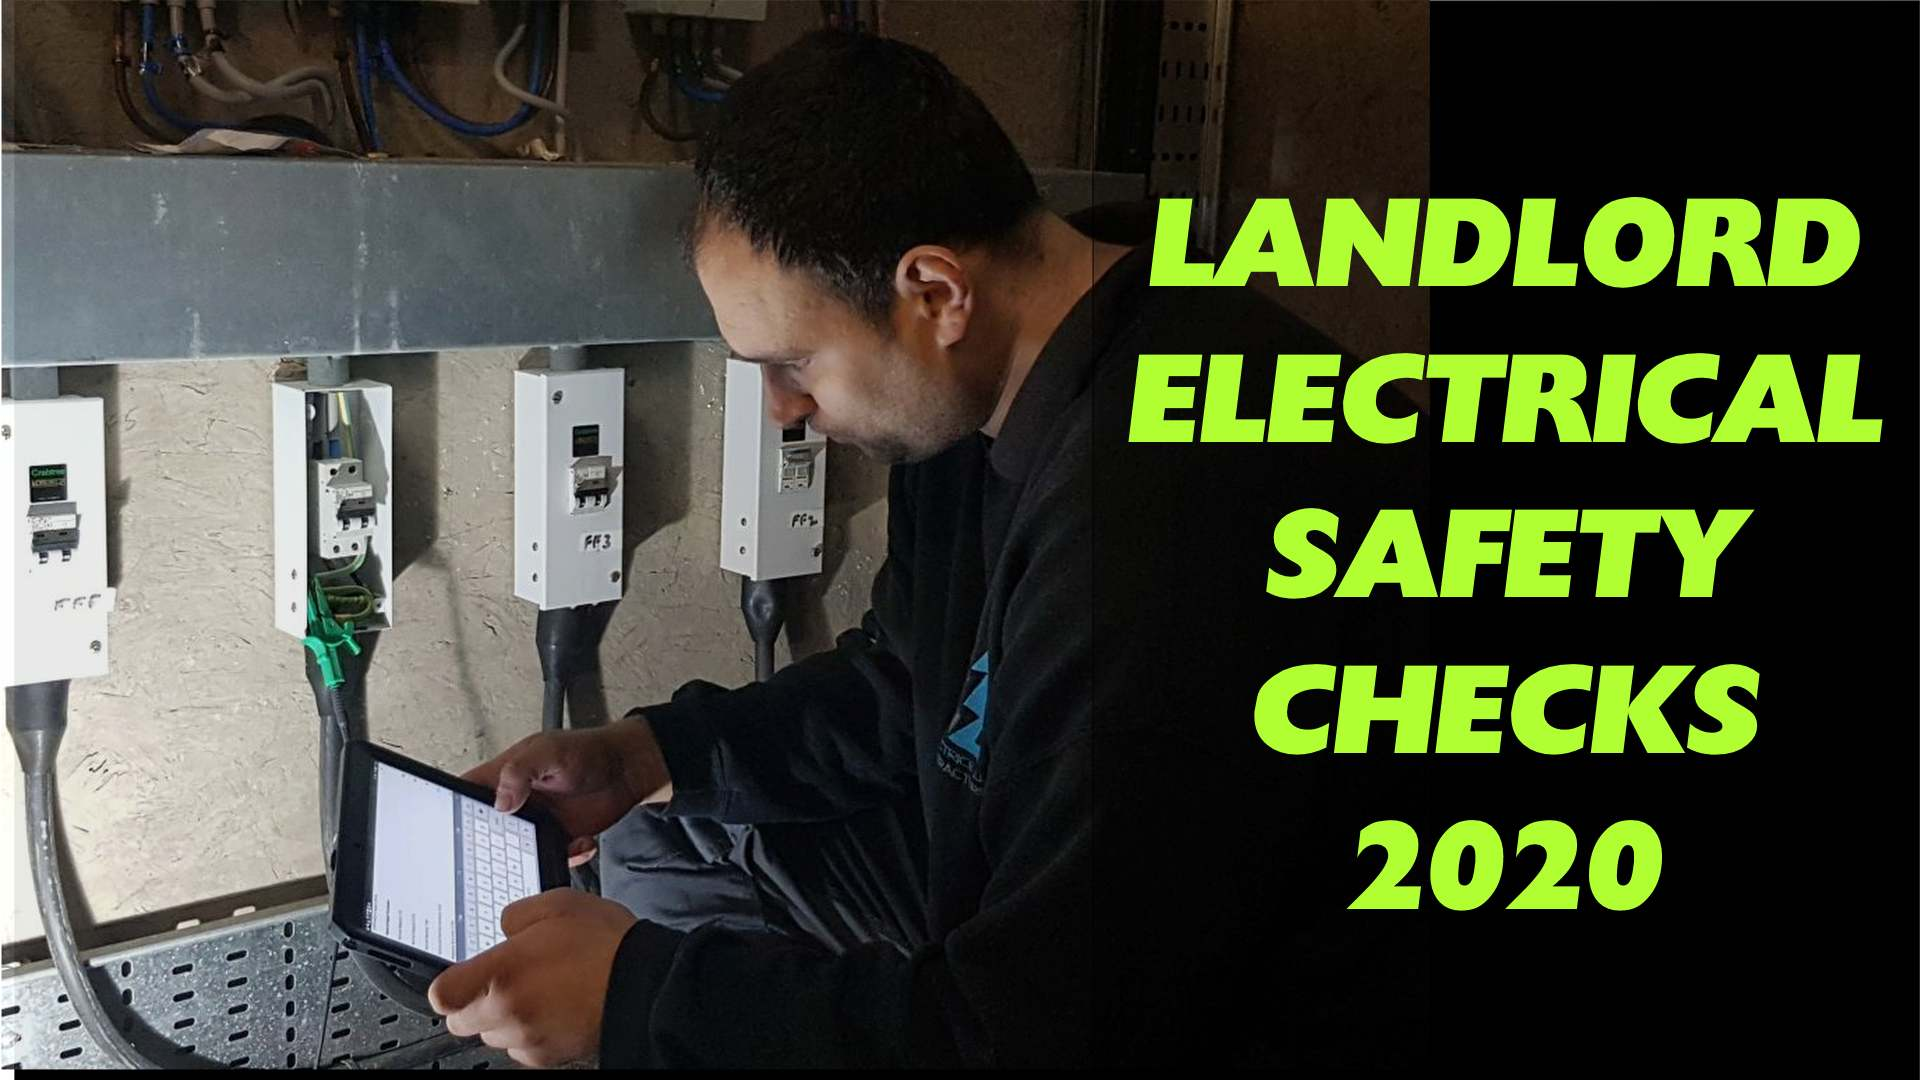 Electrical Safety Standards in the Private Rented Sector (England) Regulations 2020 - Landlord Electrical Safety Checks 2020